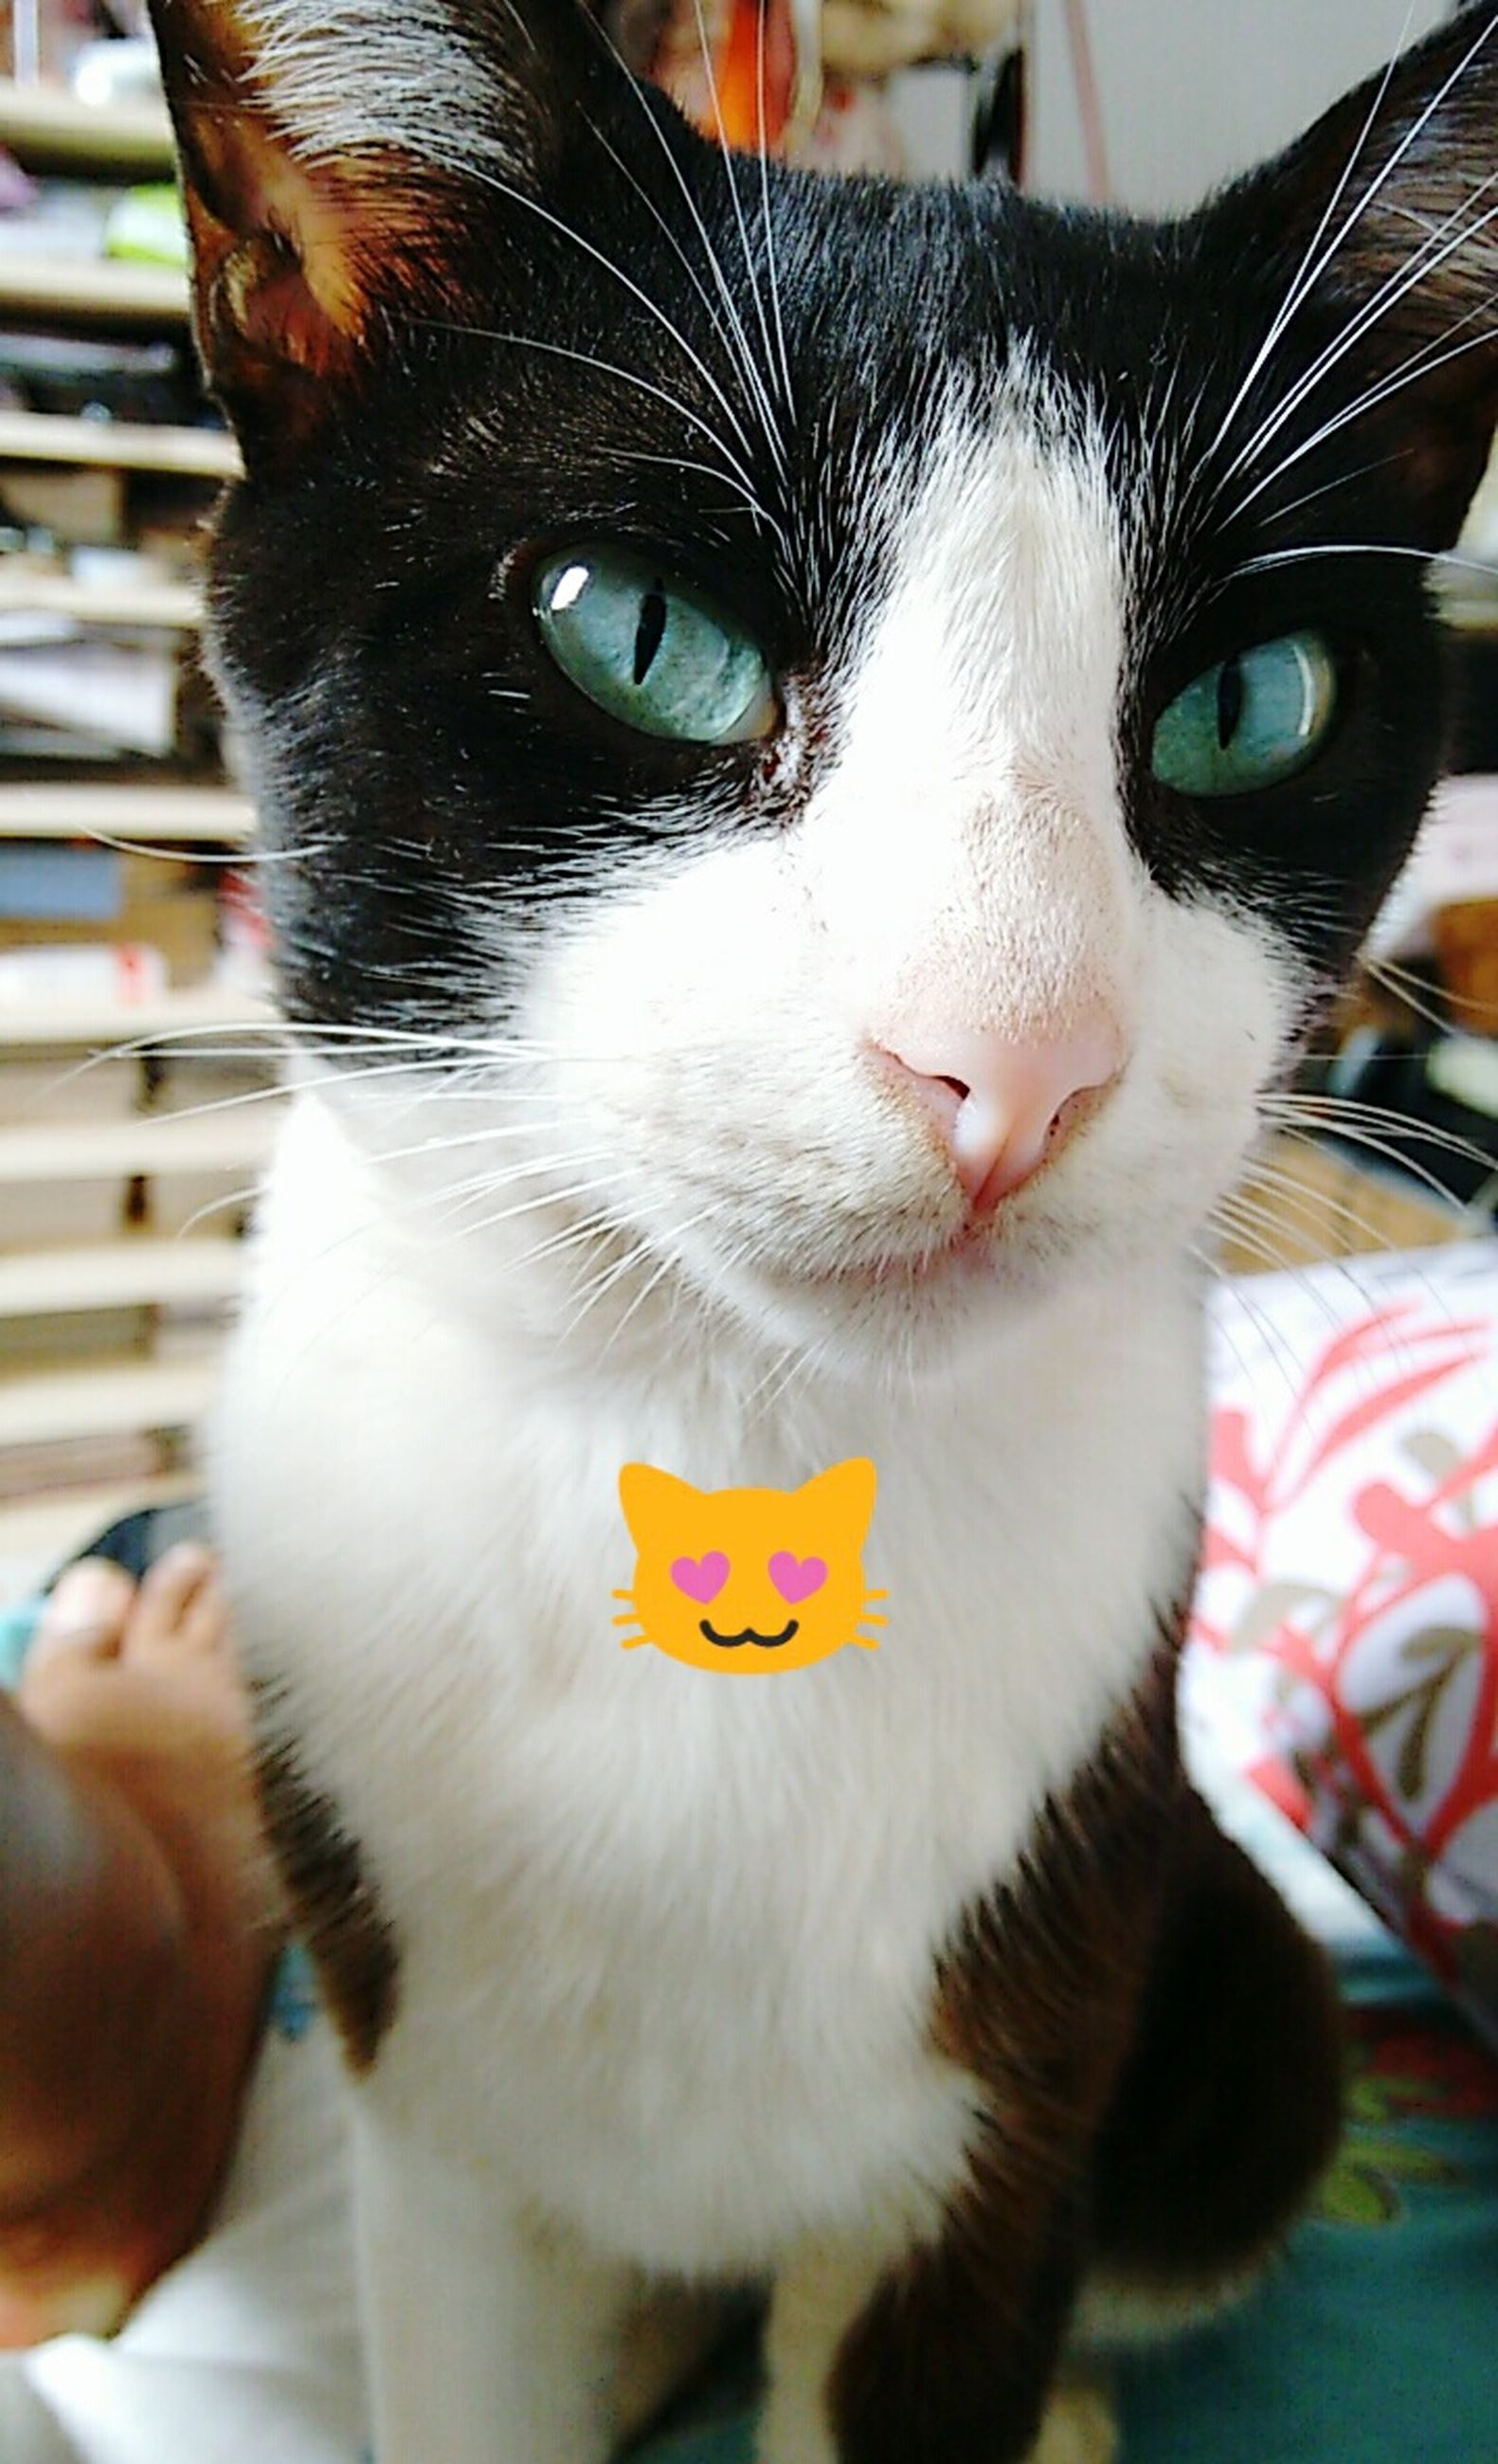 pets, domestic cat, animal themes, domestic animals, cat, one animal, feline, portrait, whisker, mammal, looking at camera, indoors, close-up, animal eye, focus on foreground, animal head, alertness, front view, staring